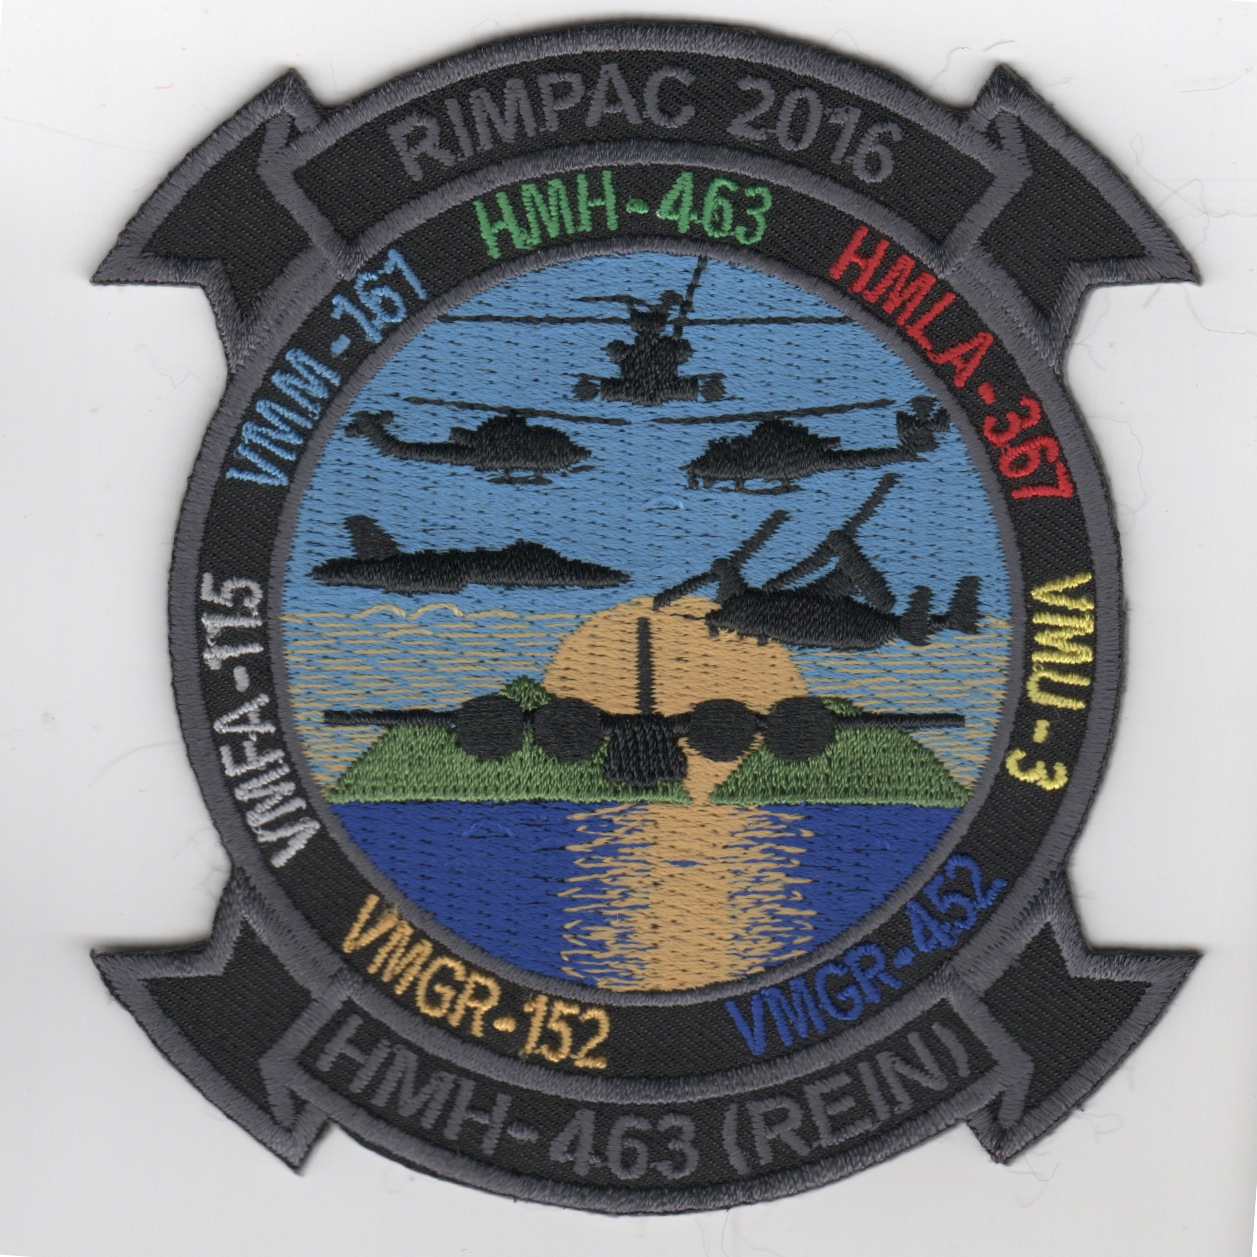 HMH-463 '2016 RIMPAC' Patch